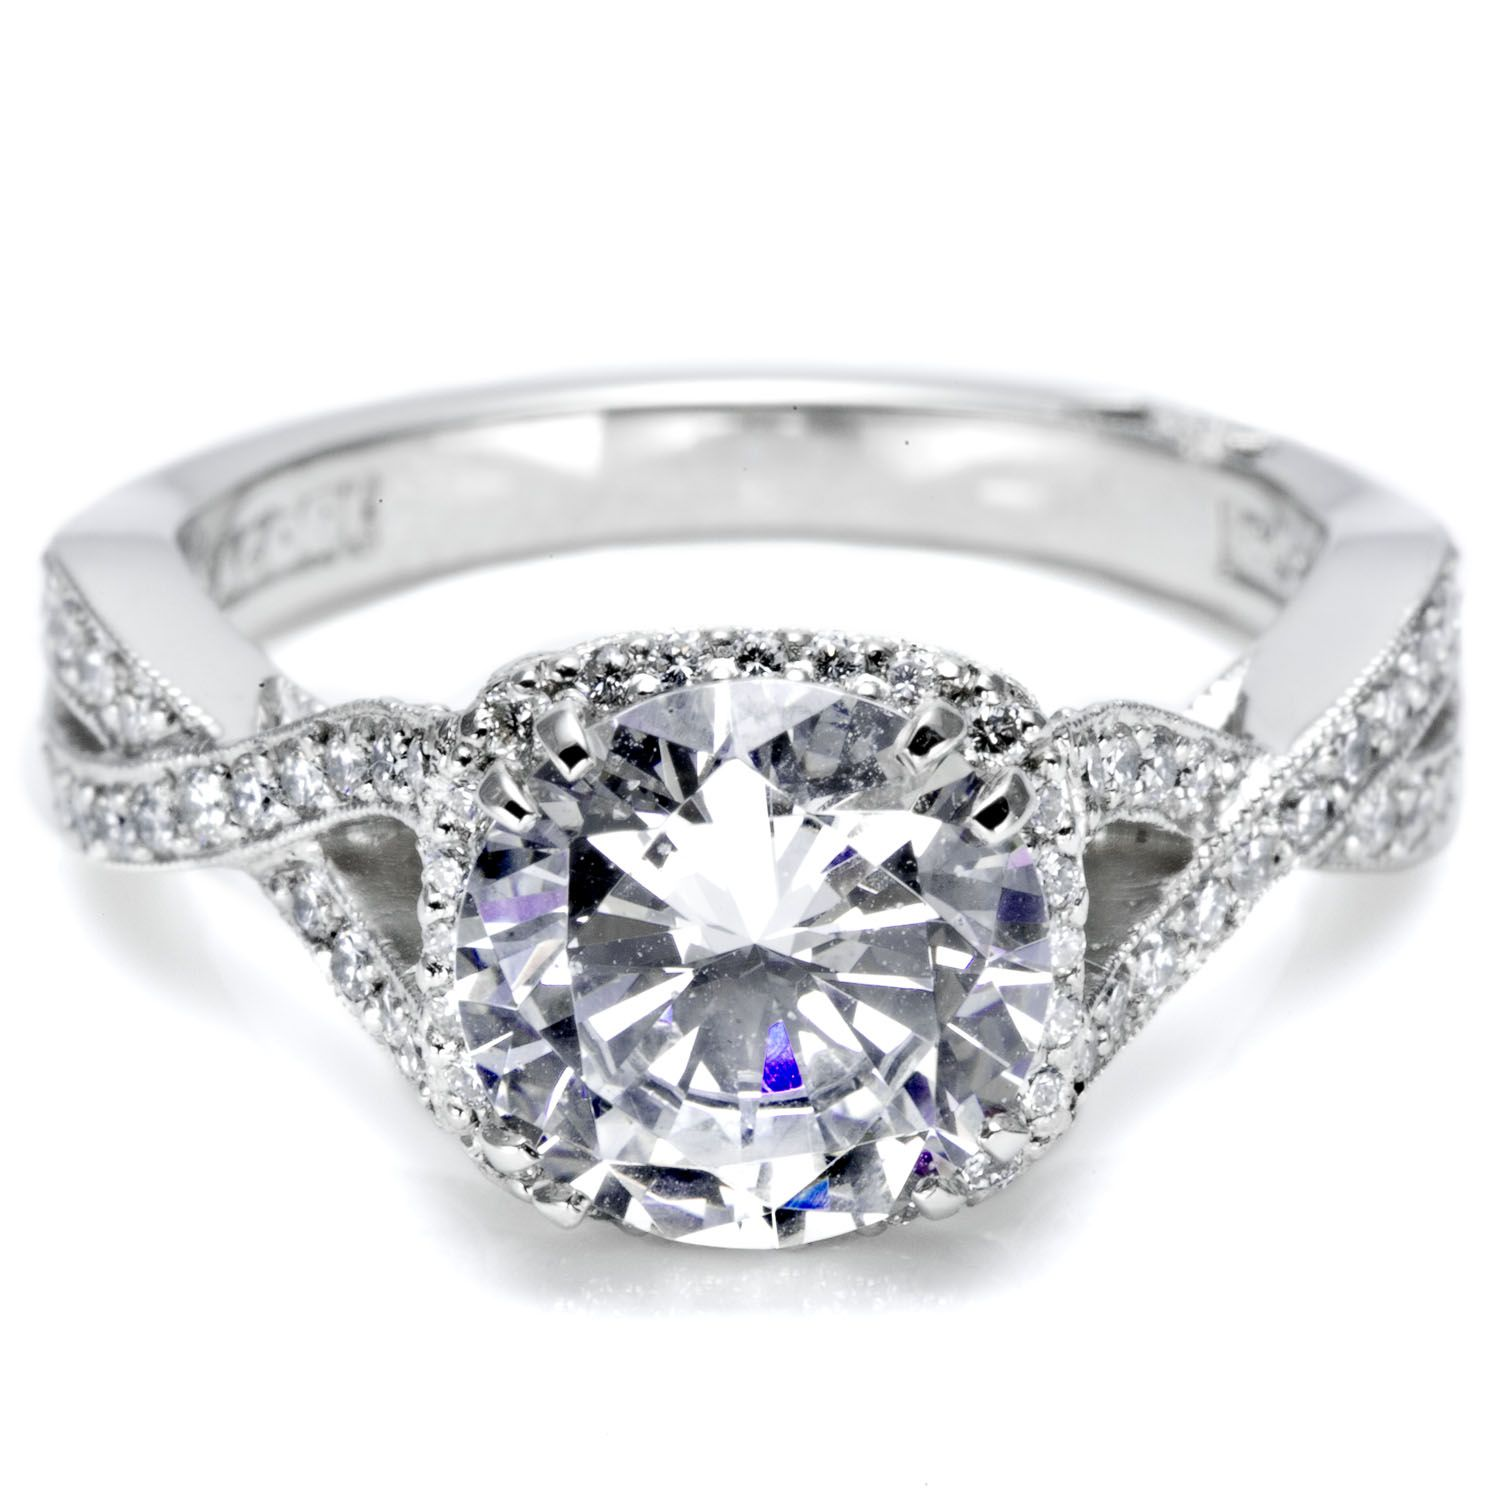 Engagement Ring Find out her style and her Favorite Designers